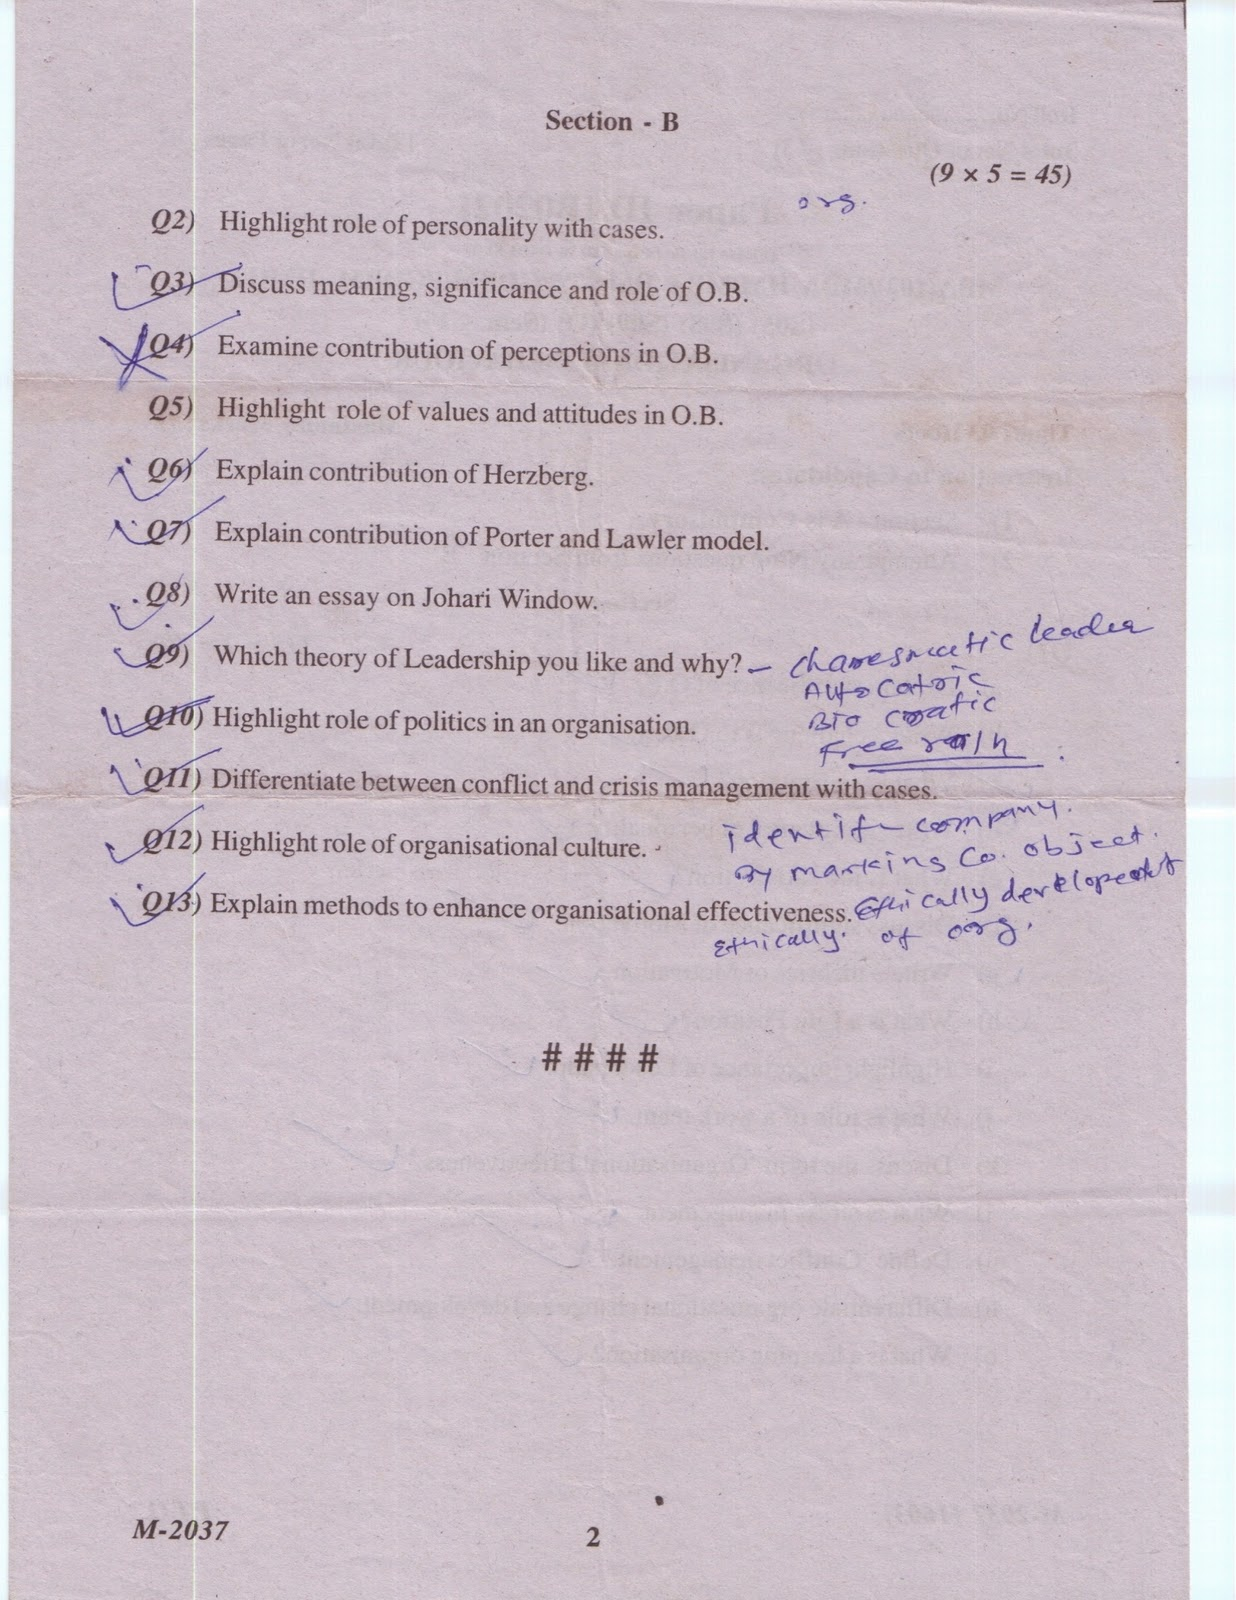 sumit manwal  question paper for mba hm organisational behaviour yr 2010